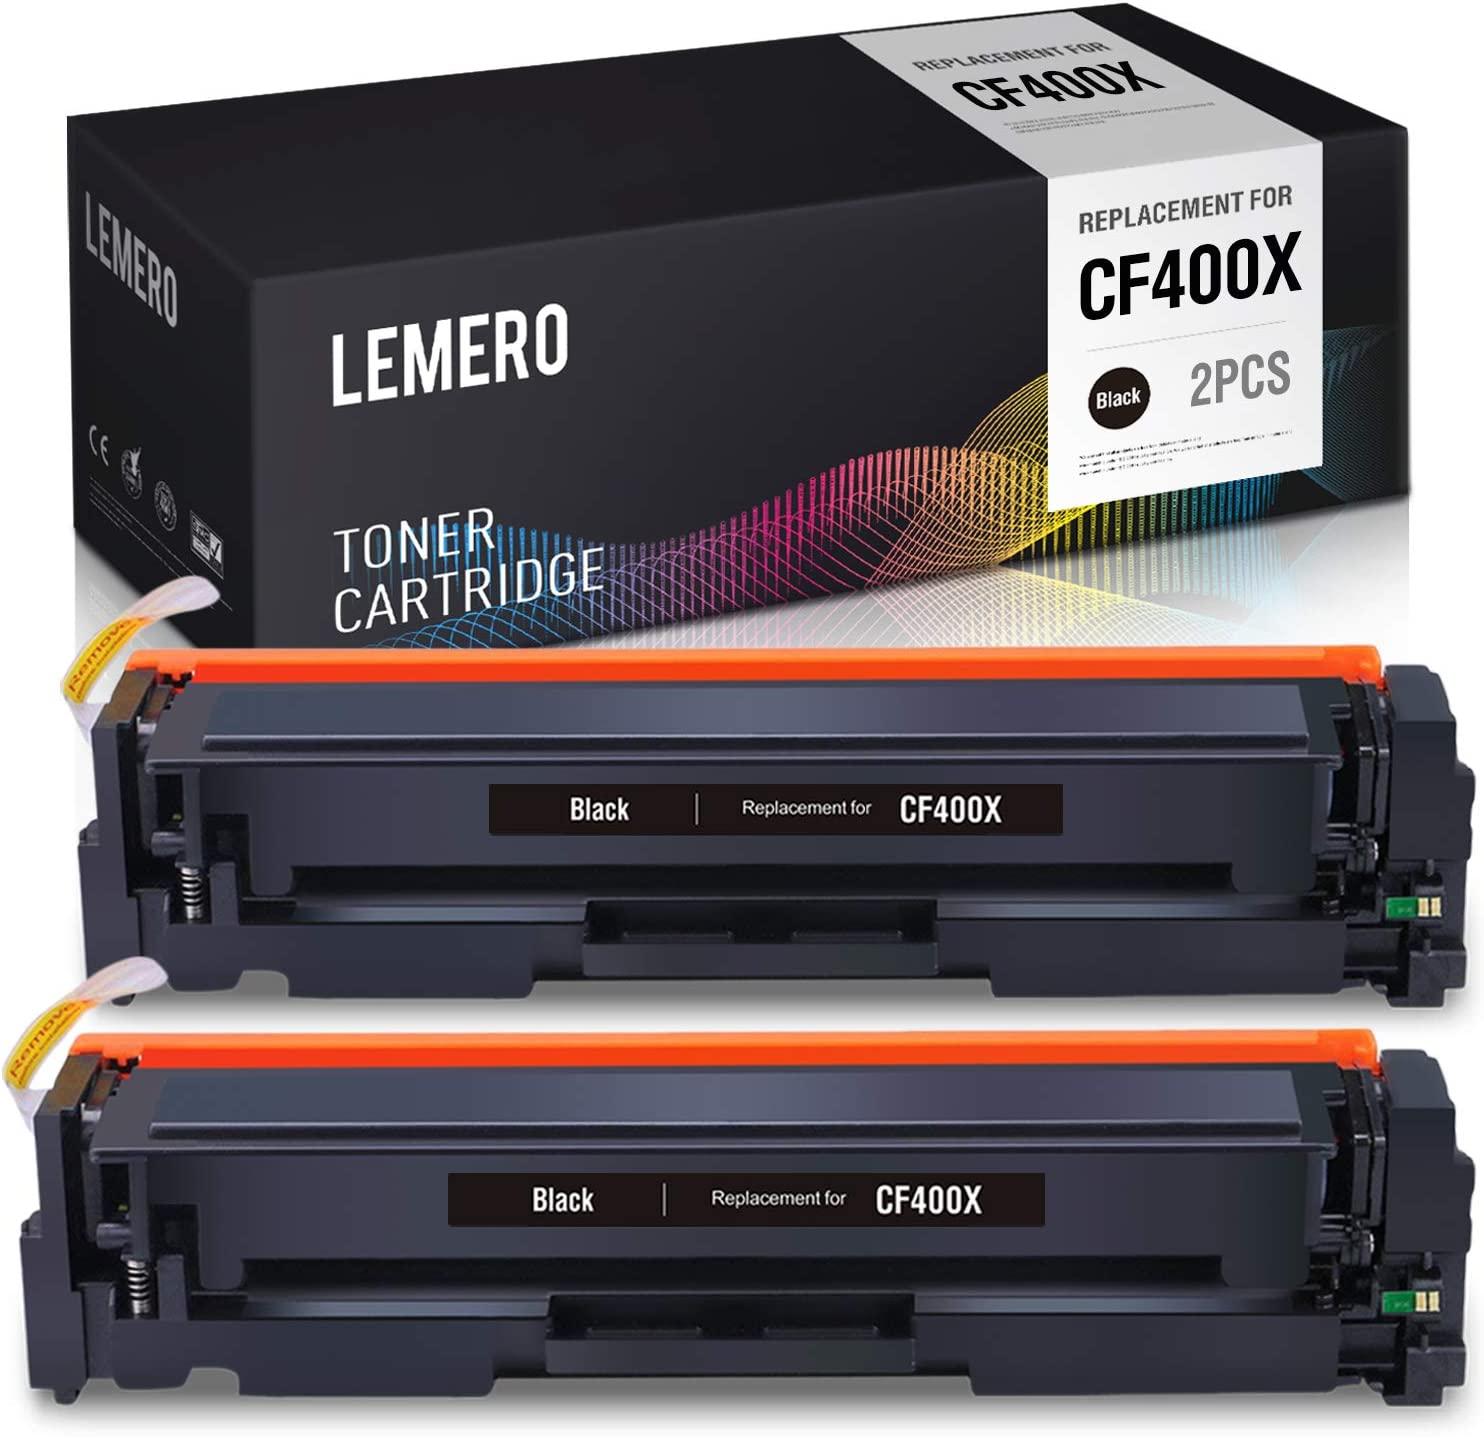 LEMERO Compatible Toner Cartridge Replacement for HP 201X 201A CF400X CF400A to use with Color Laserjet Pro M252dw M252 MFP M277dw M277 M277c6 M277n (Black, 2-Pack)